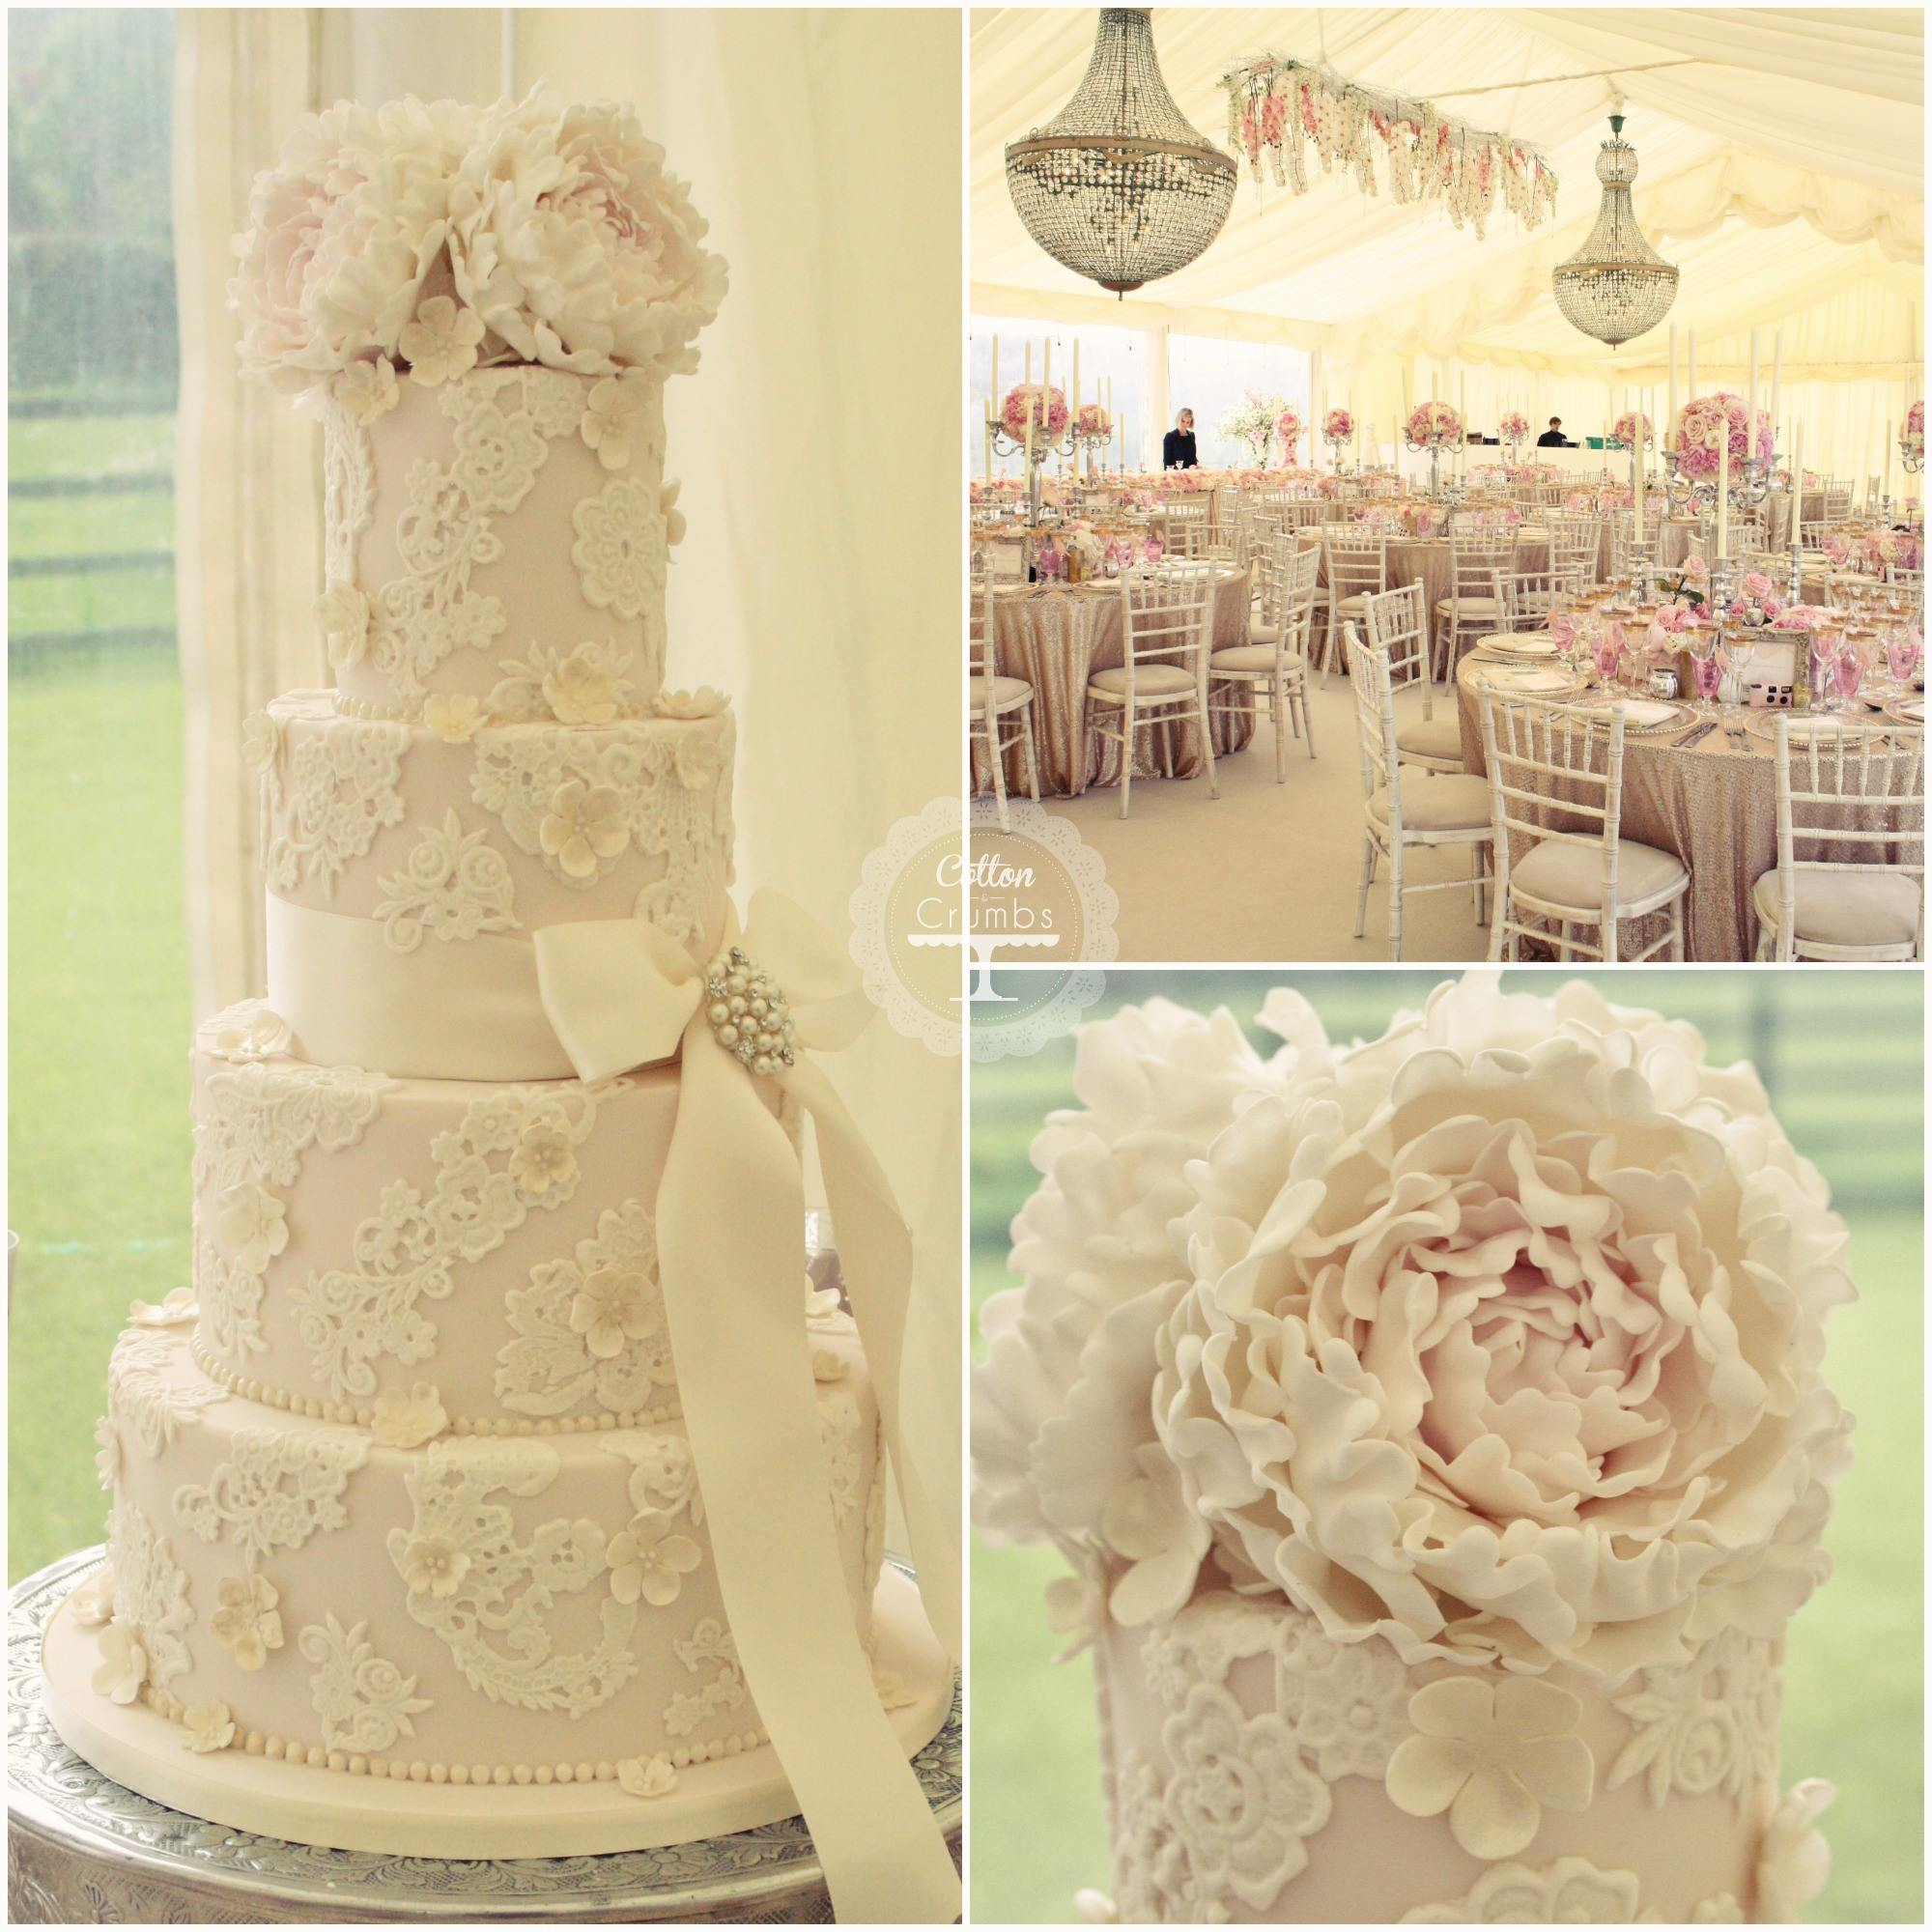 wedding-cake-ideas-10-06202014nz